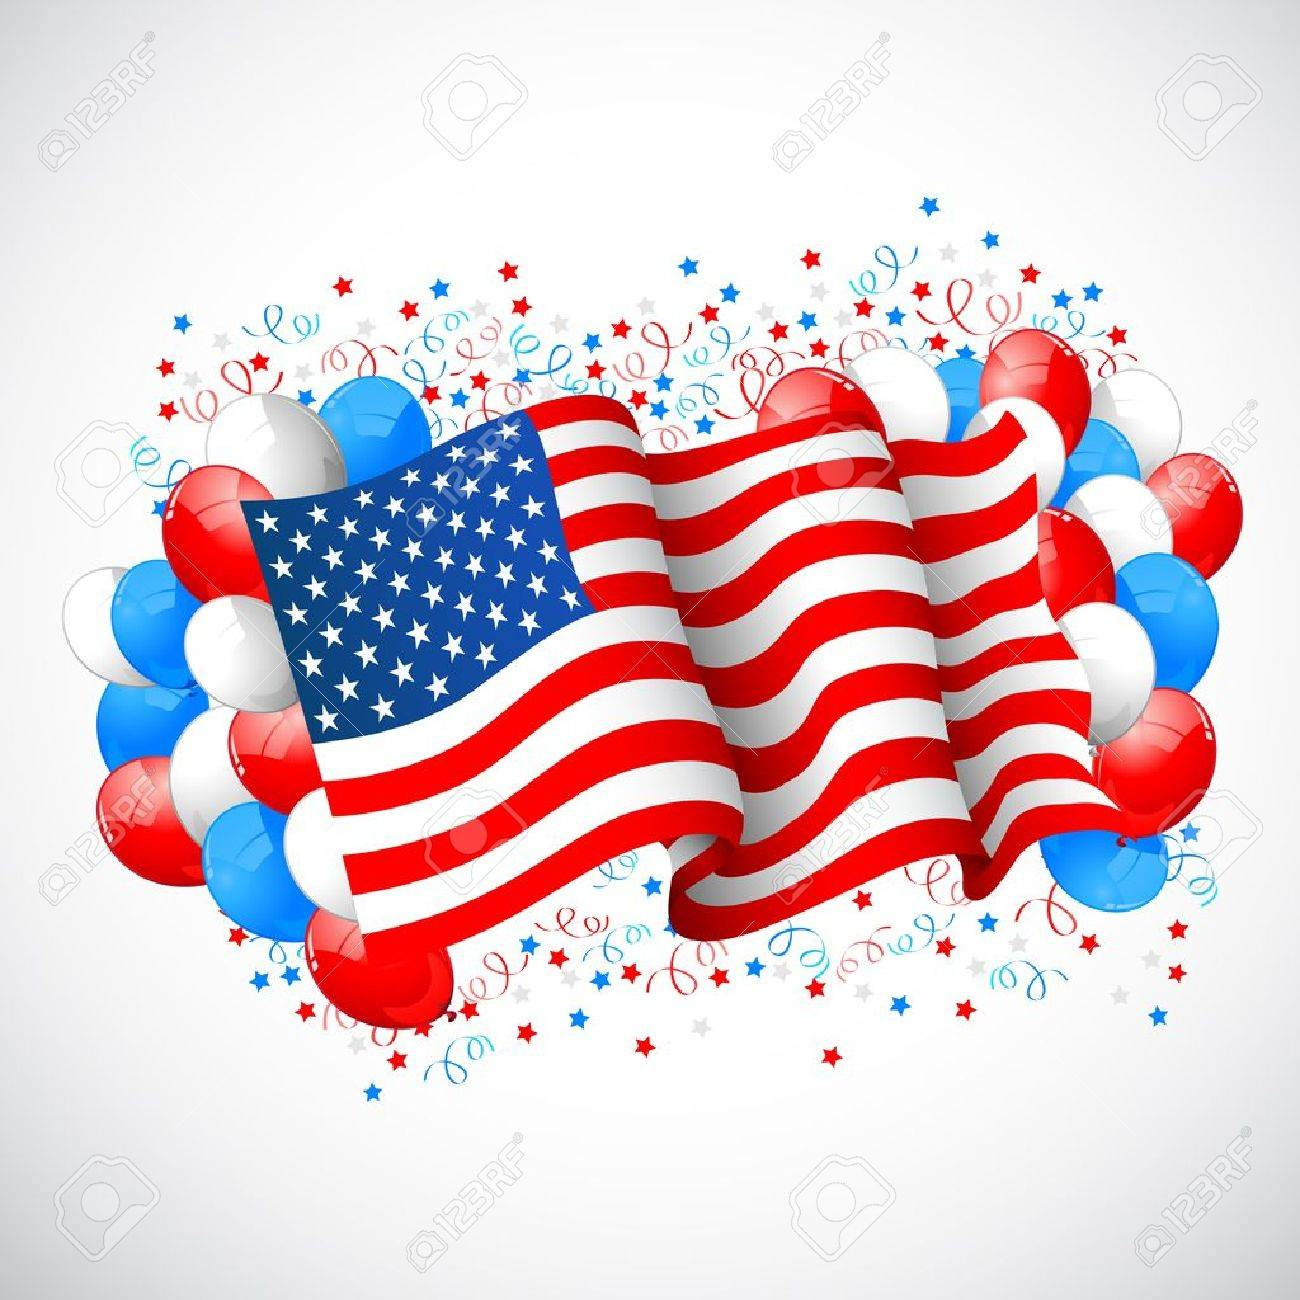 illustration of colorful balloon with American flag for Independence Day Stock Vector - 20138042